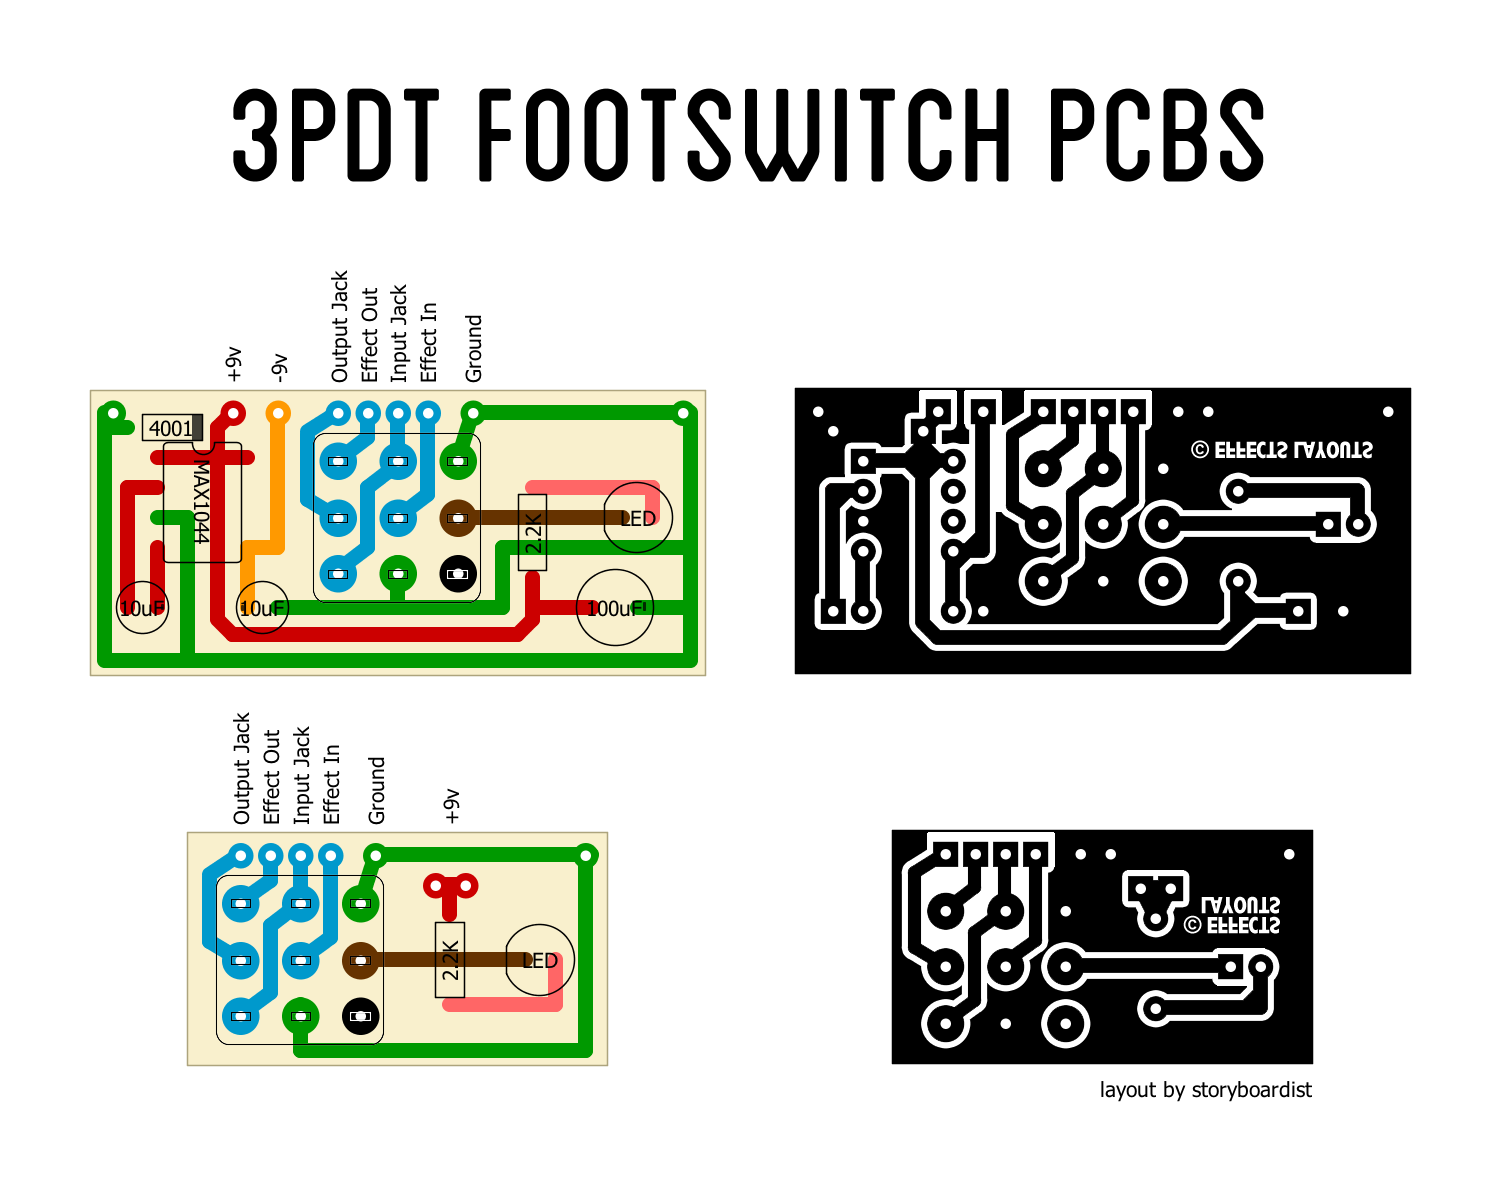 Dpdt Footswitch Wiring Diagram 30 Images 3pdt Switch 6e4c1a71ead13435ef1f6062c137e425 Guitar Pedal Pcb Schematics Google Search Schematic At Cita